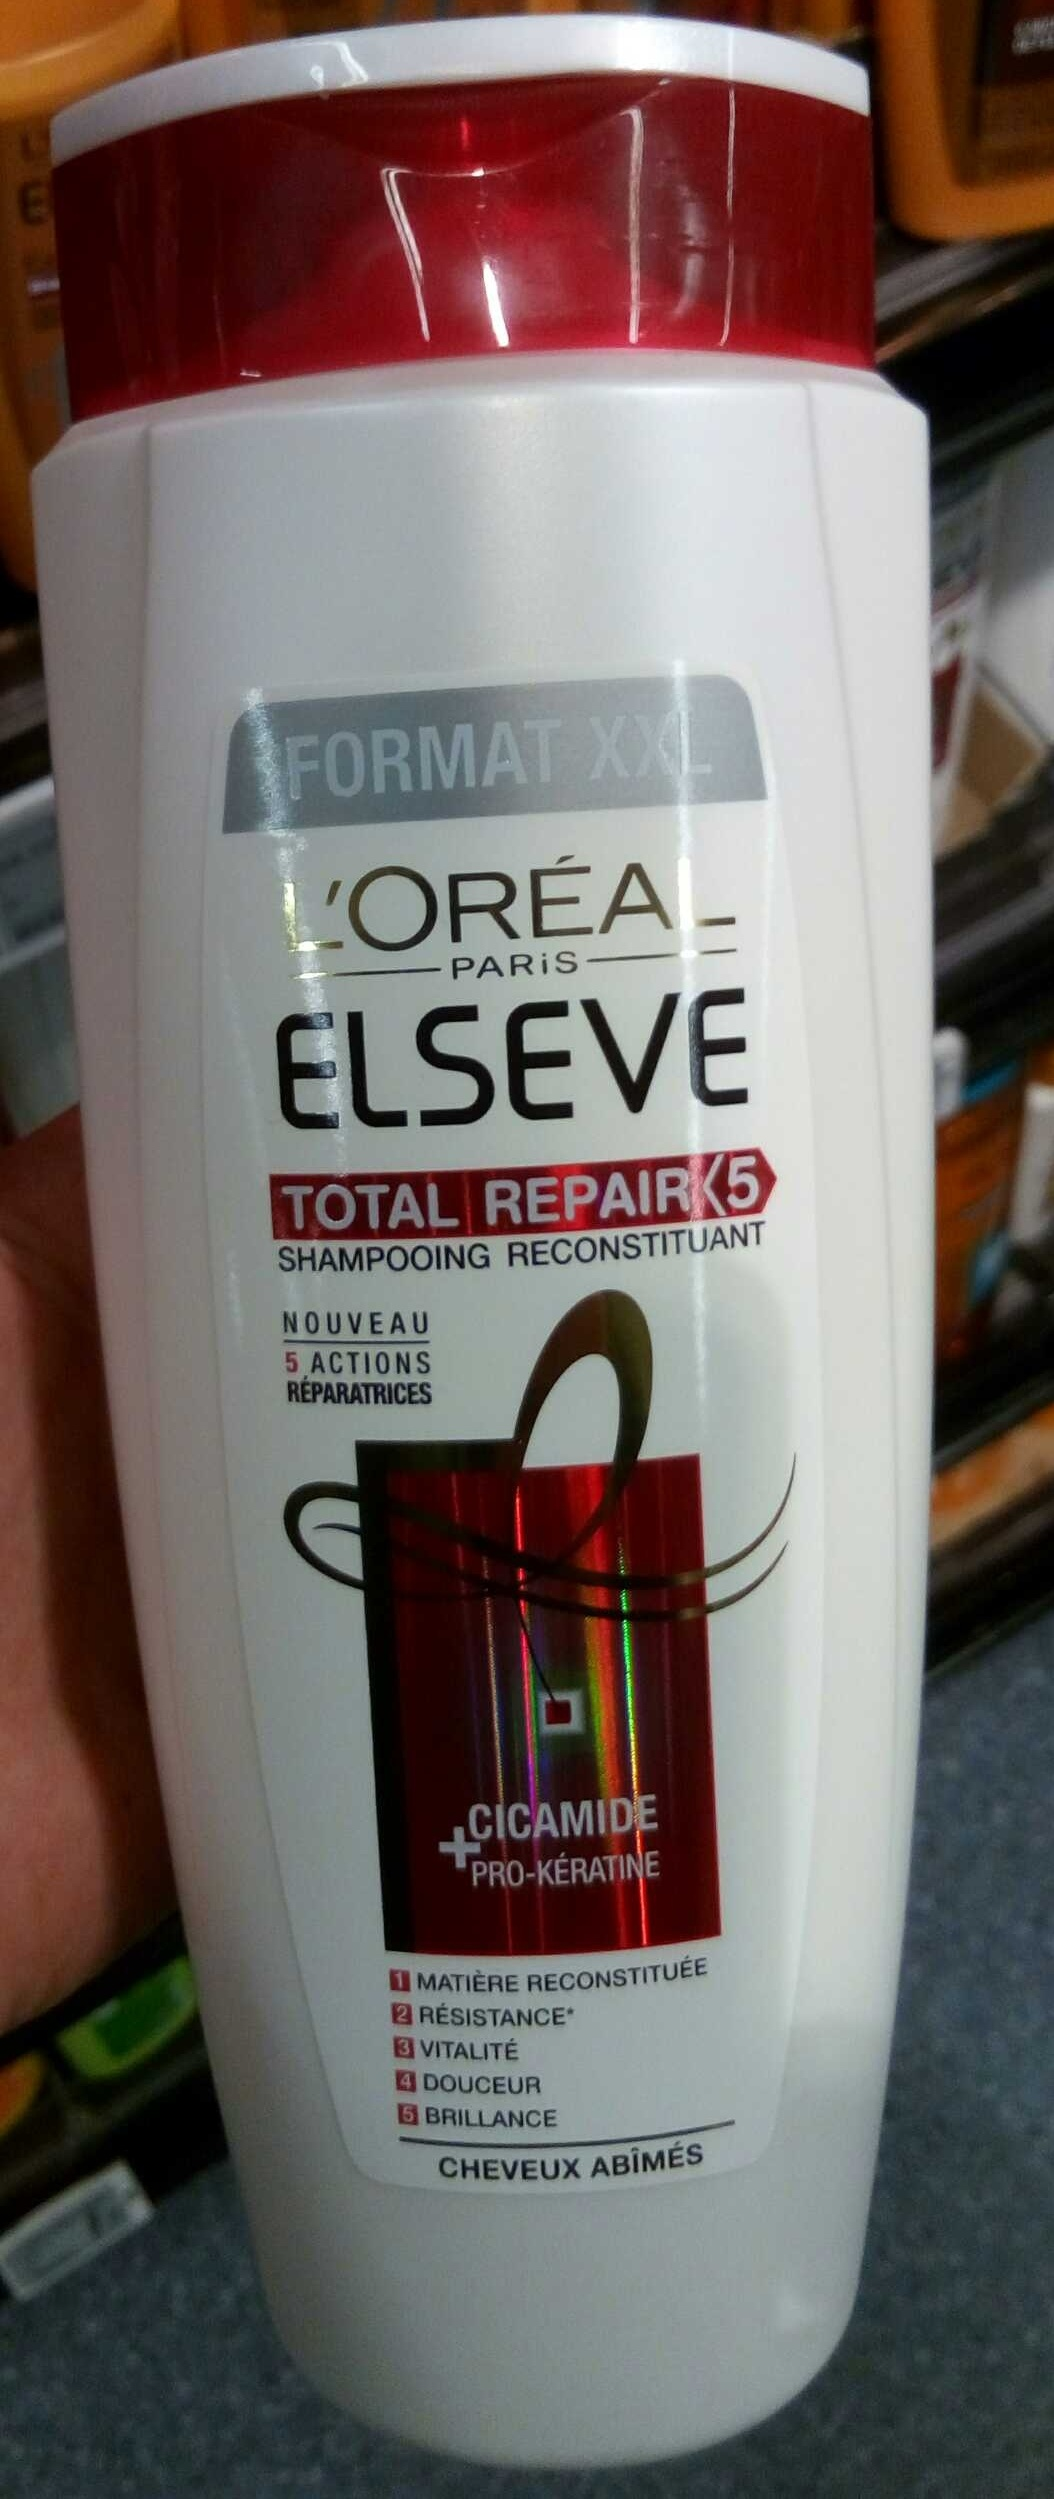 Elseve Total Repair 5 shampooing reconstituant (format XXL) - Product